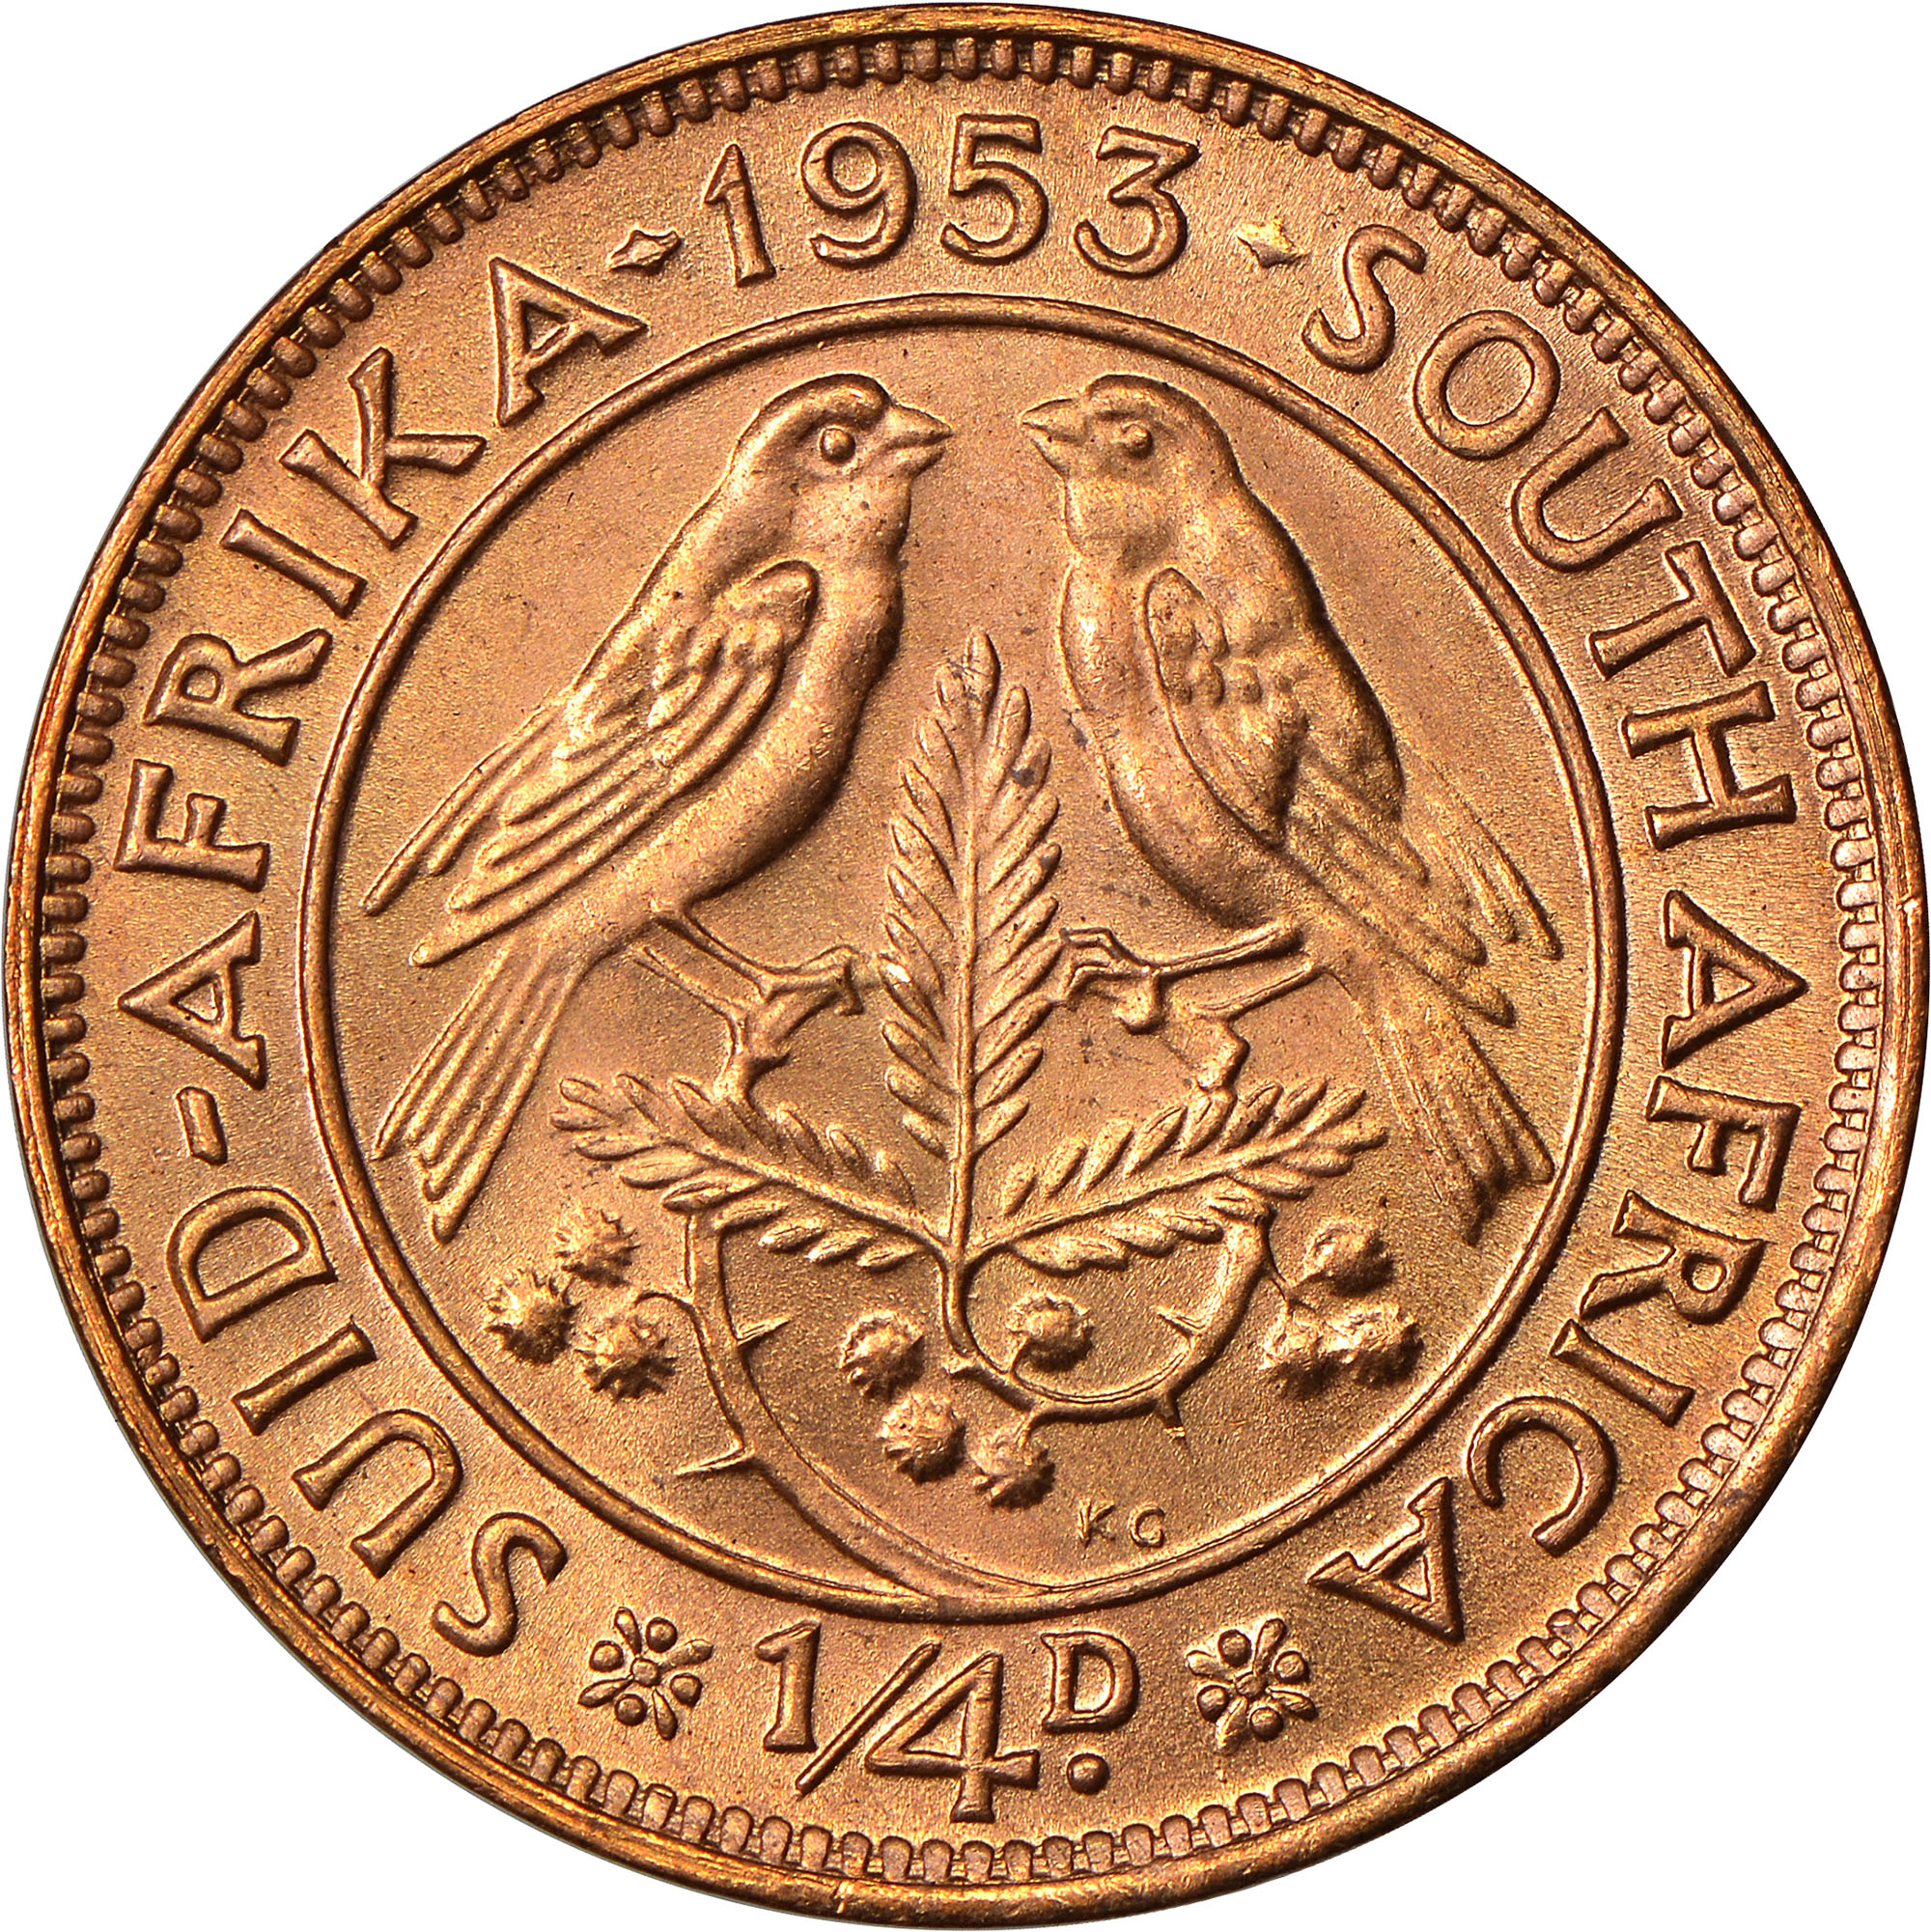 Coin value afrika suid South African